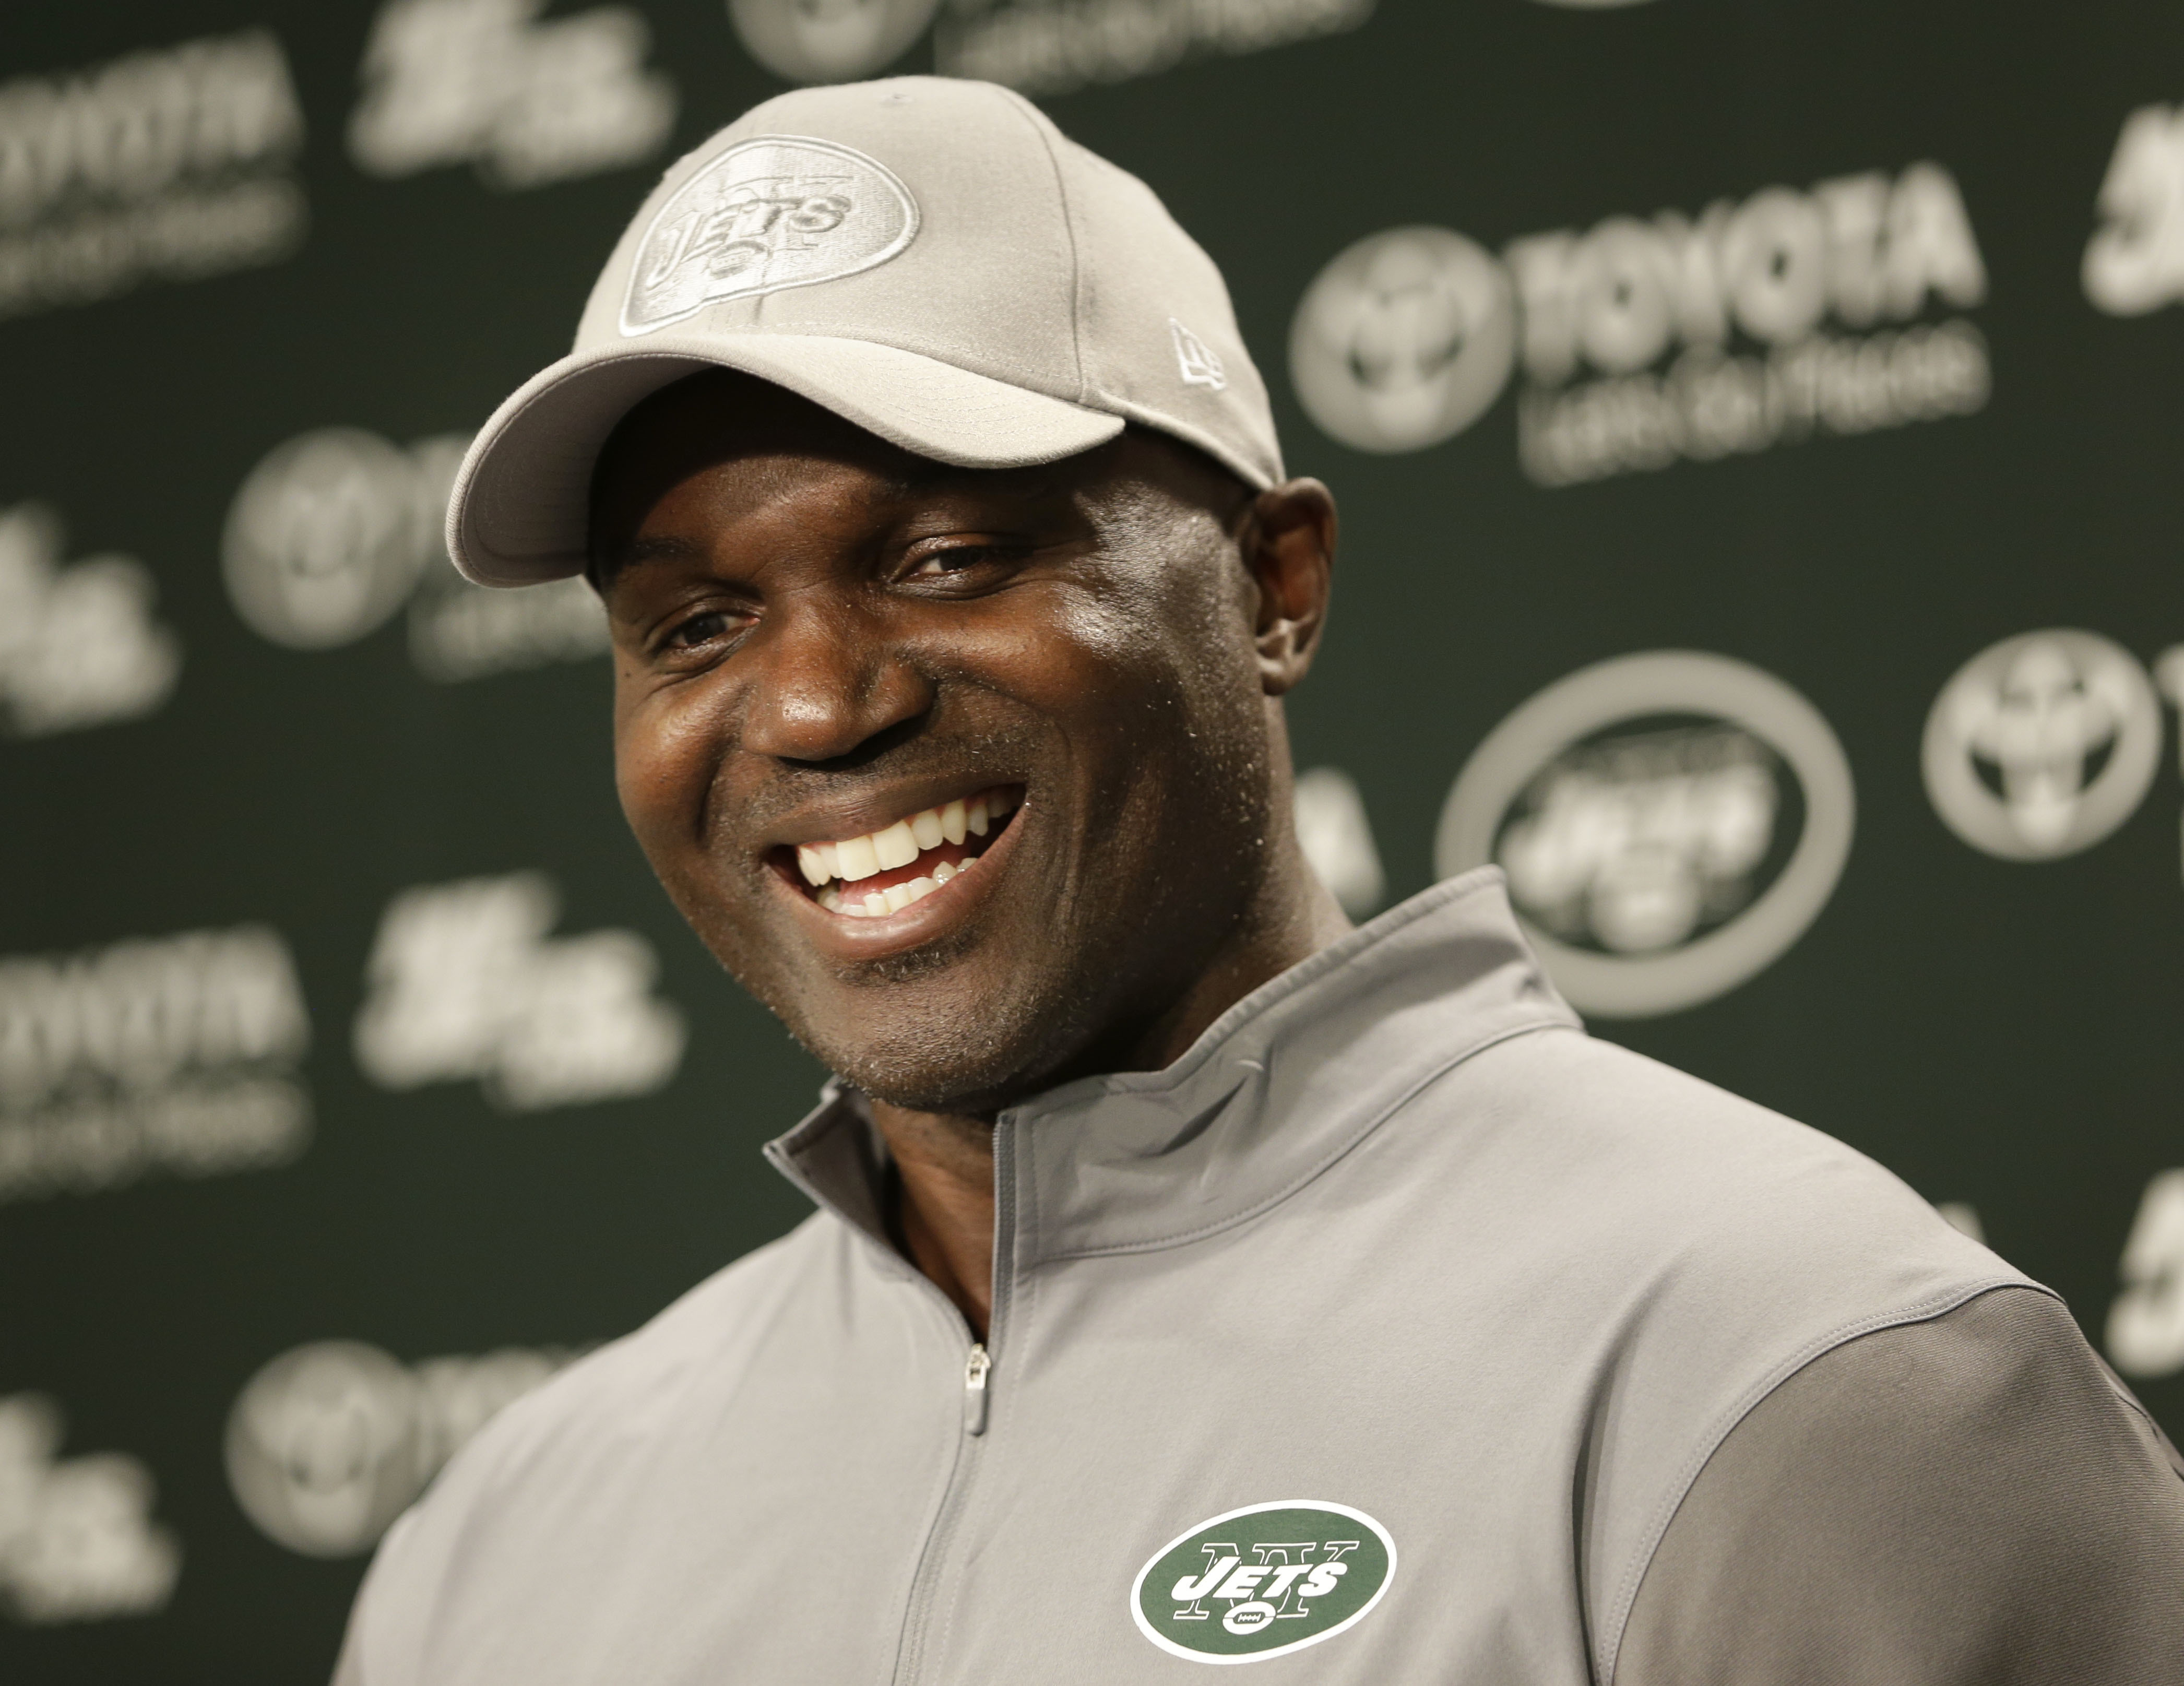 New York Jets coach Todd Bowles speaks to reporters after a NFL football practice in Florham Park, N.J., Wednesday, June 15, 2016. (AP Photo/Seth Wenig)